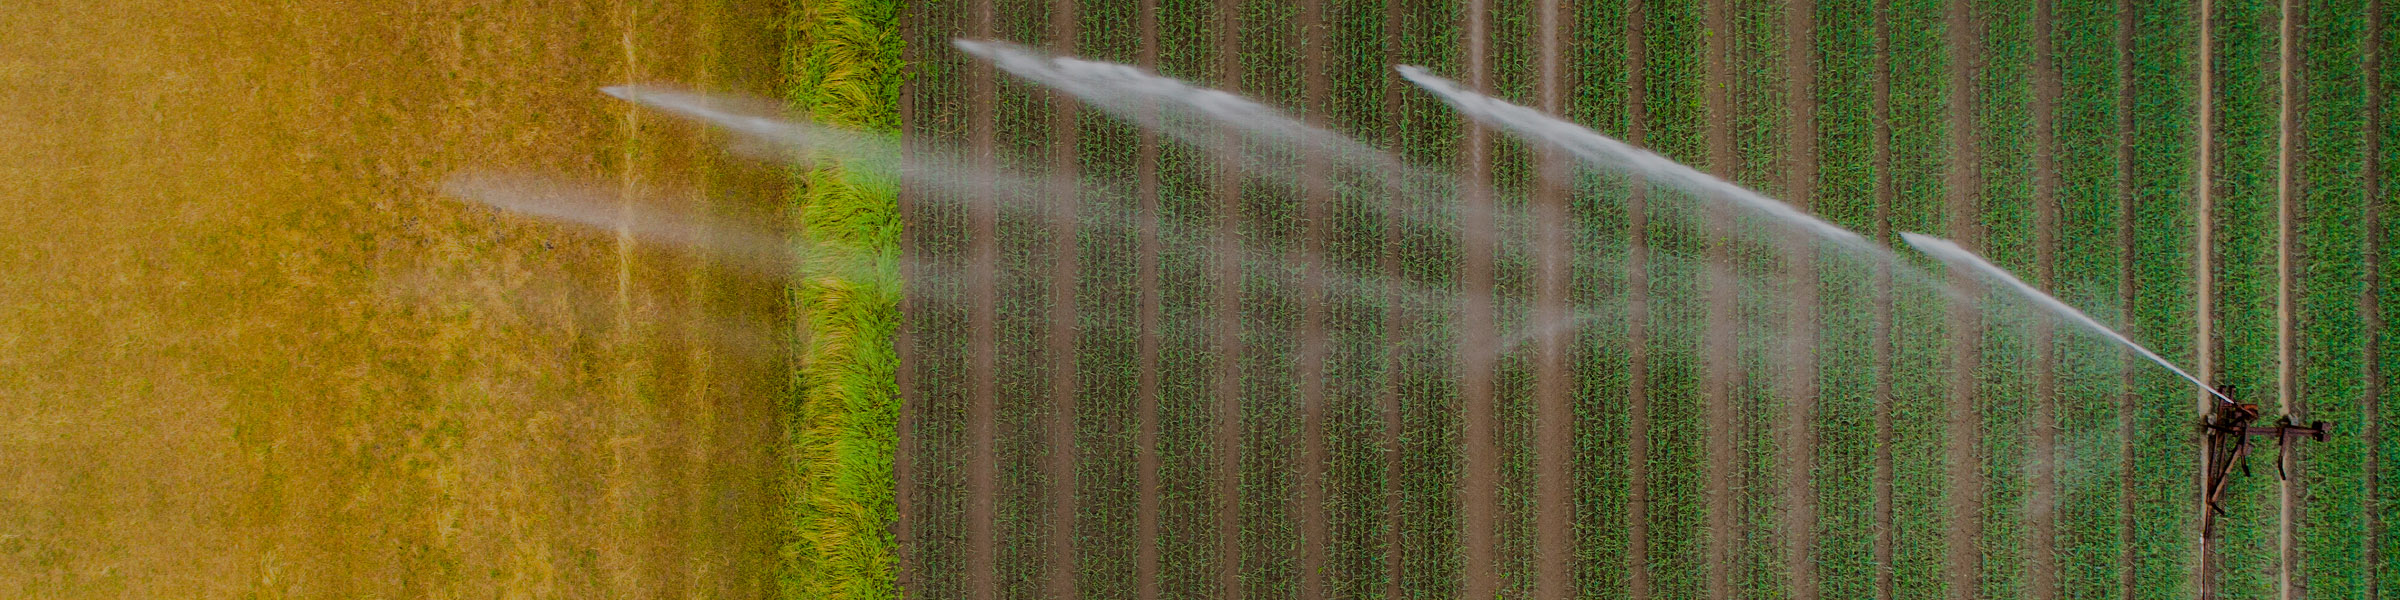 973809212_Macro_Agricultural_sprinkler_wheat_field